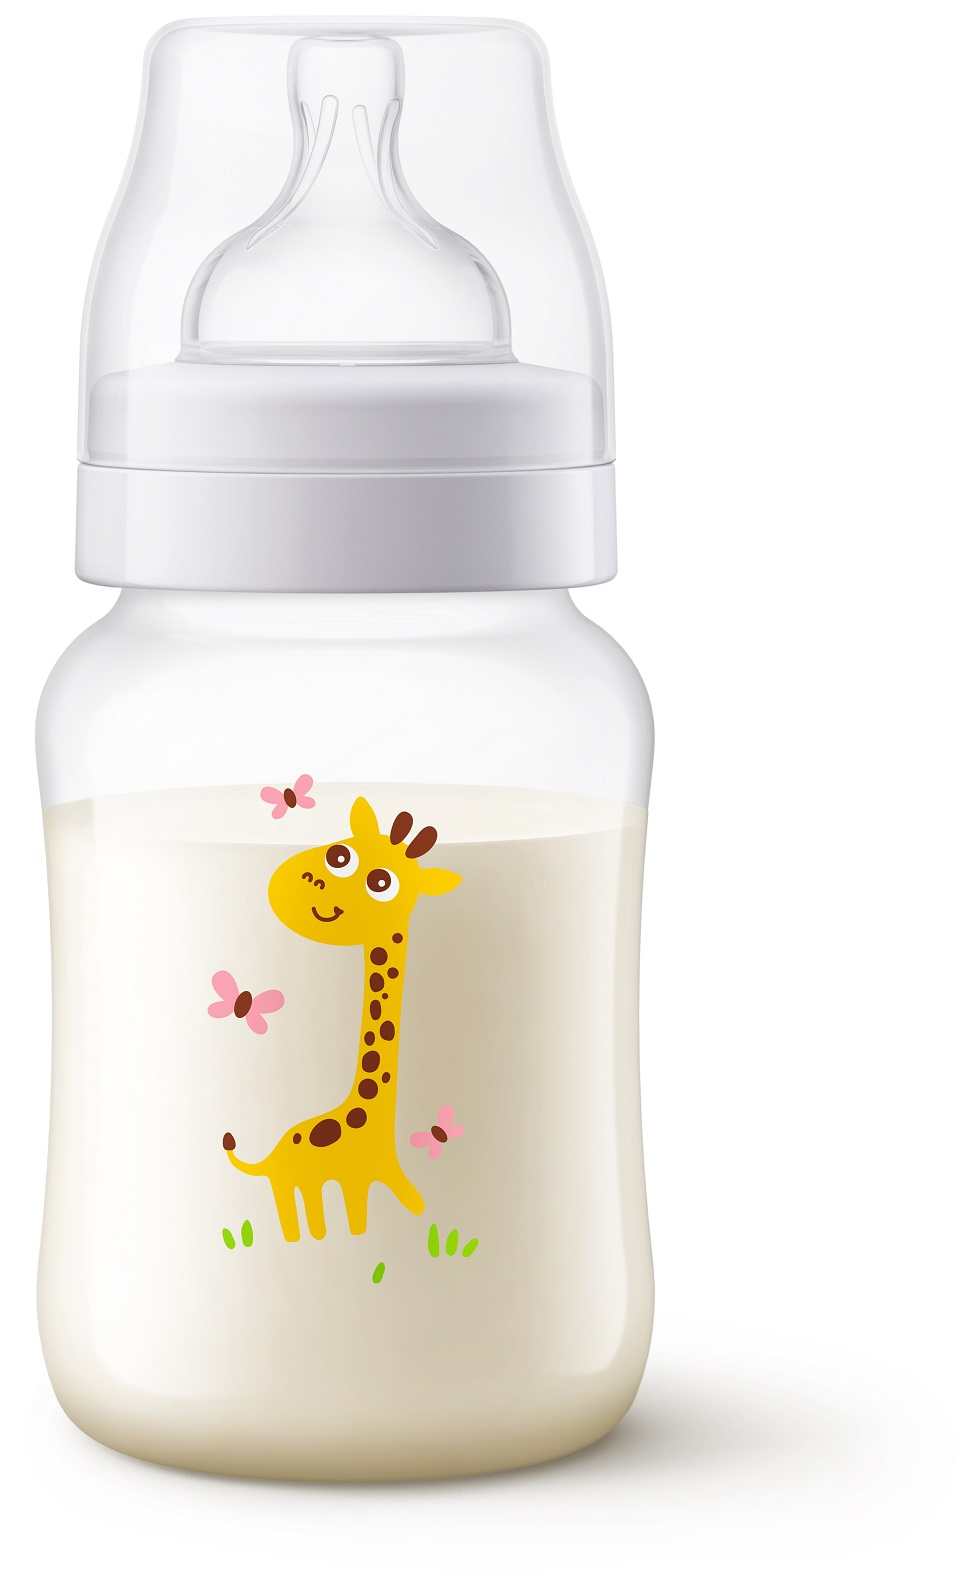 Lahev Anti-colic 260 ml, 1 ks Žirafa Philips Avent